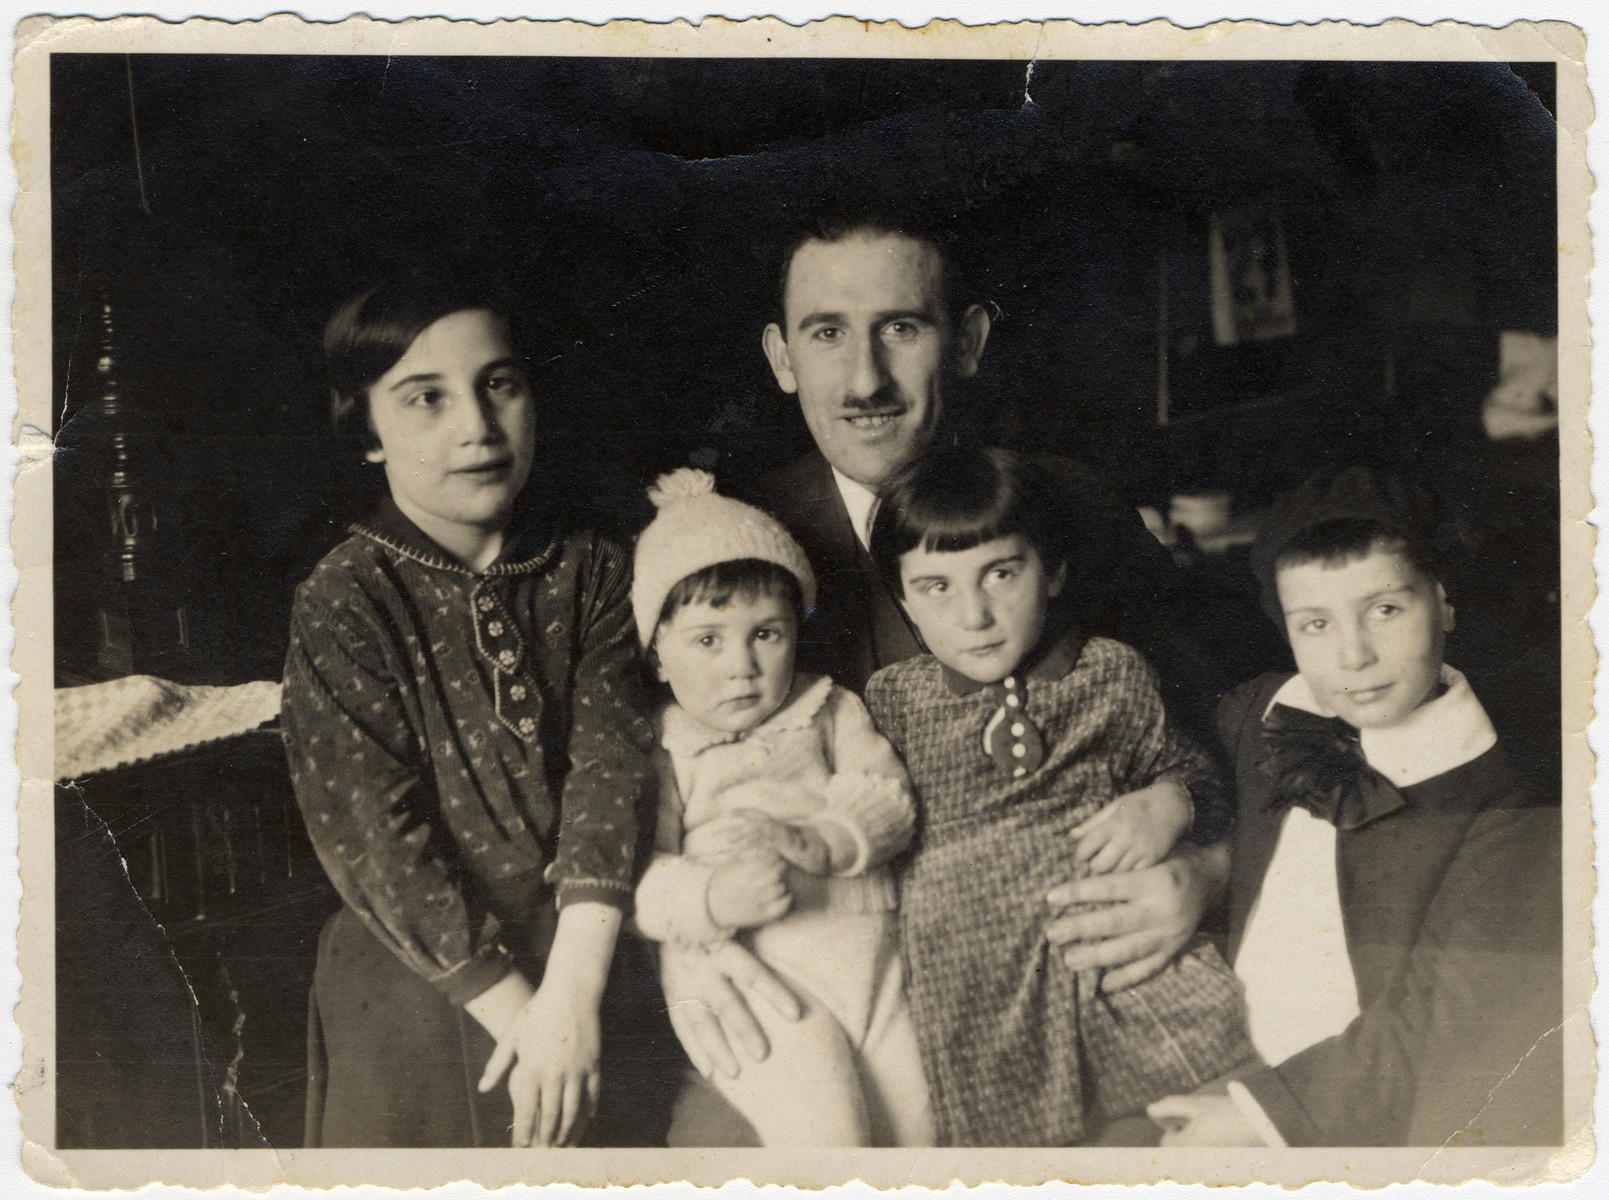 Simon Bloch poses with his four children gathered around him.  From left to right: Lore (later Schwab), Julius Israel, the father Simon Bloch, Margot (later Klein) and Max.  The following year they moved to Strasbourg following the Nazi take-over of Germany.